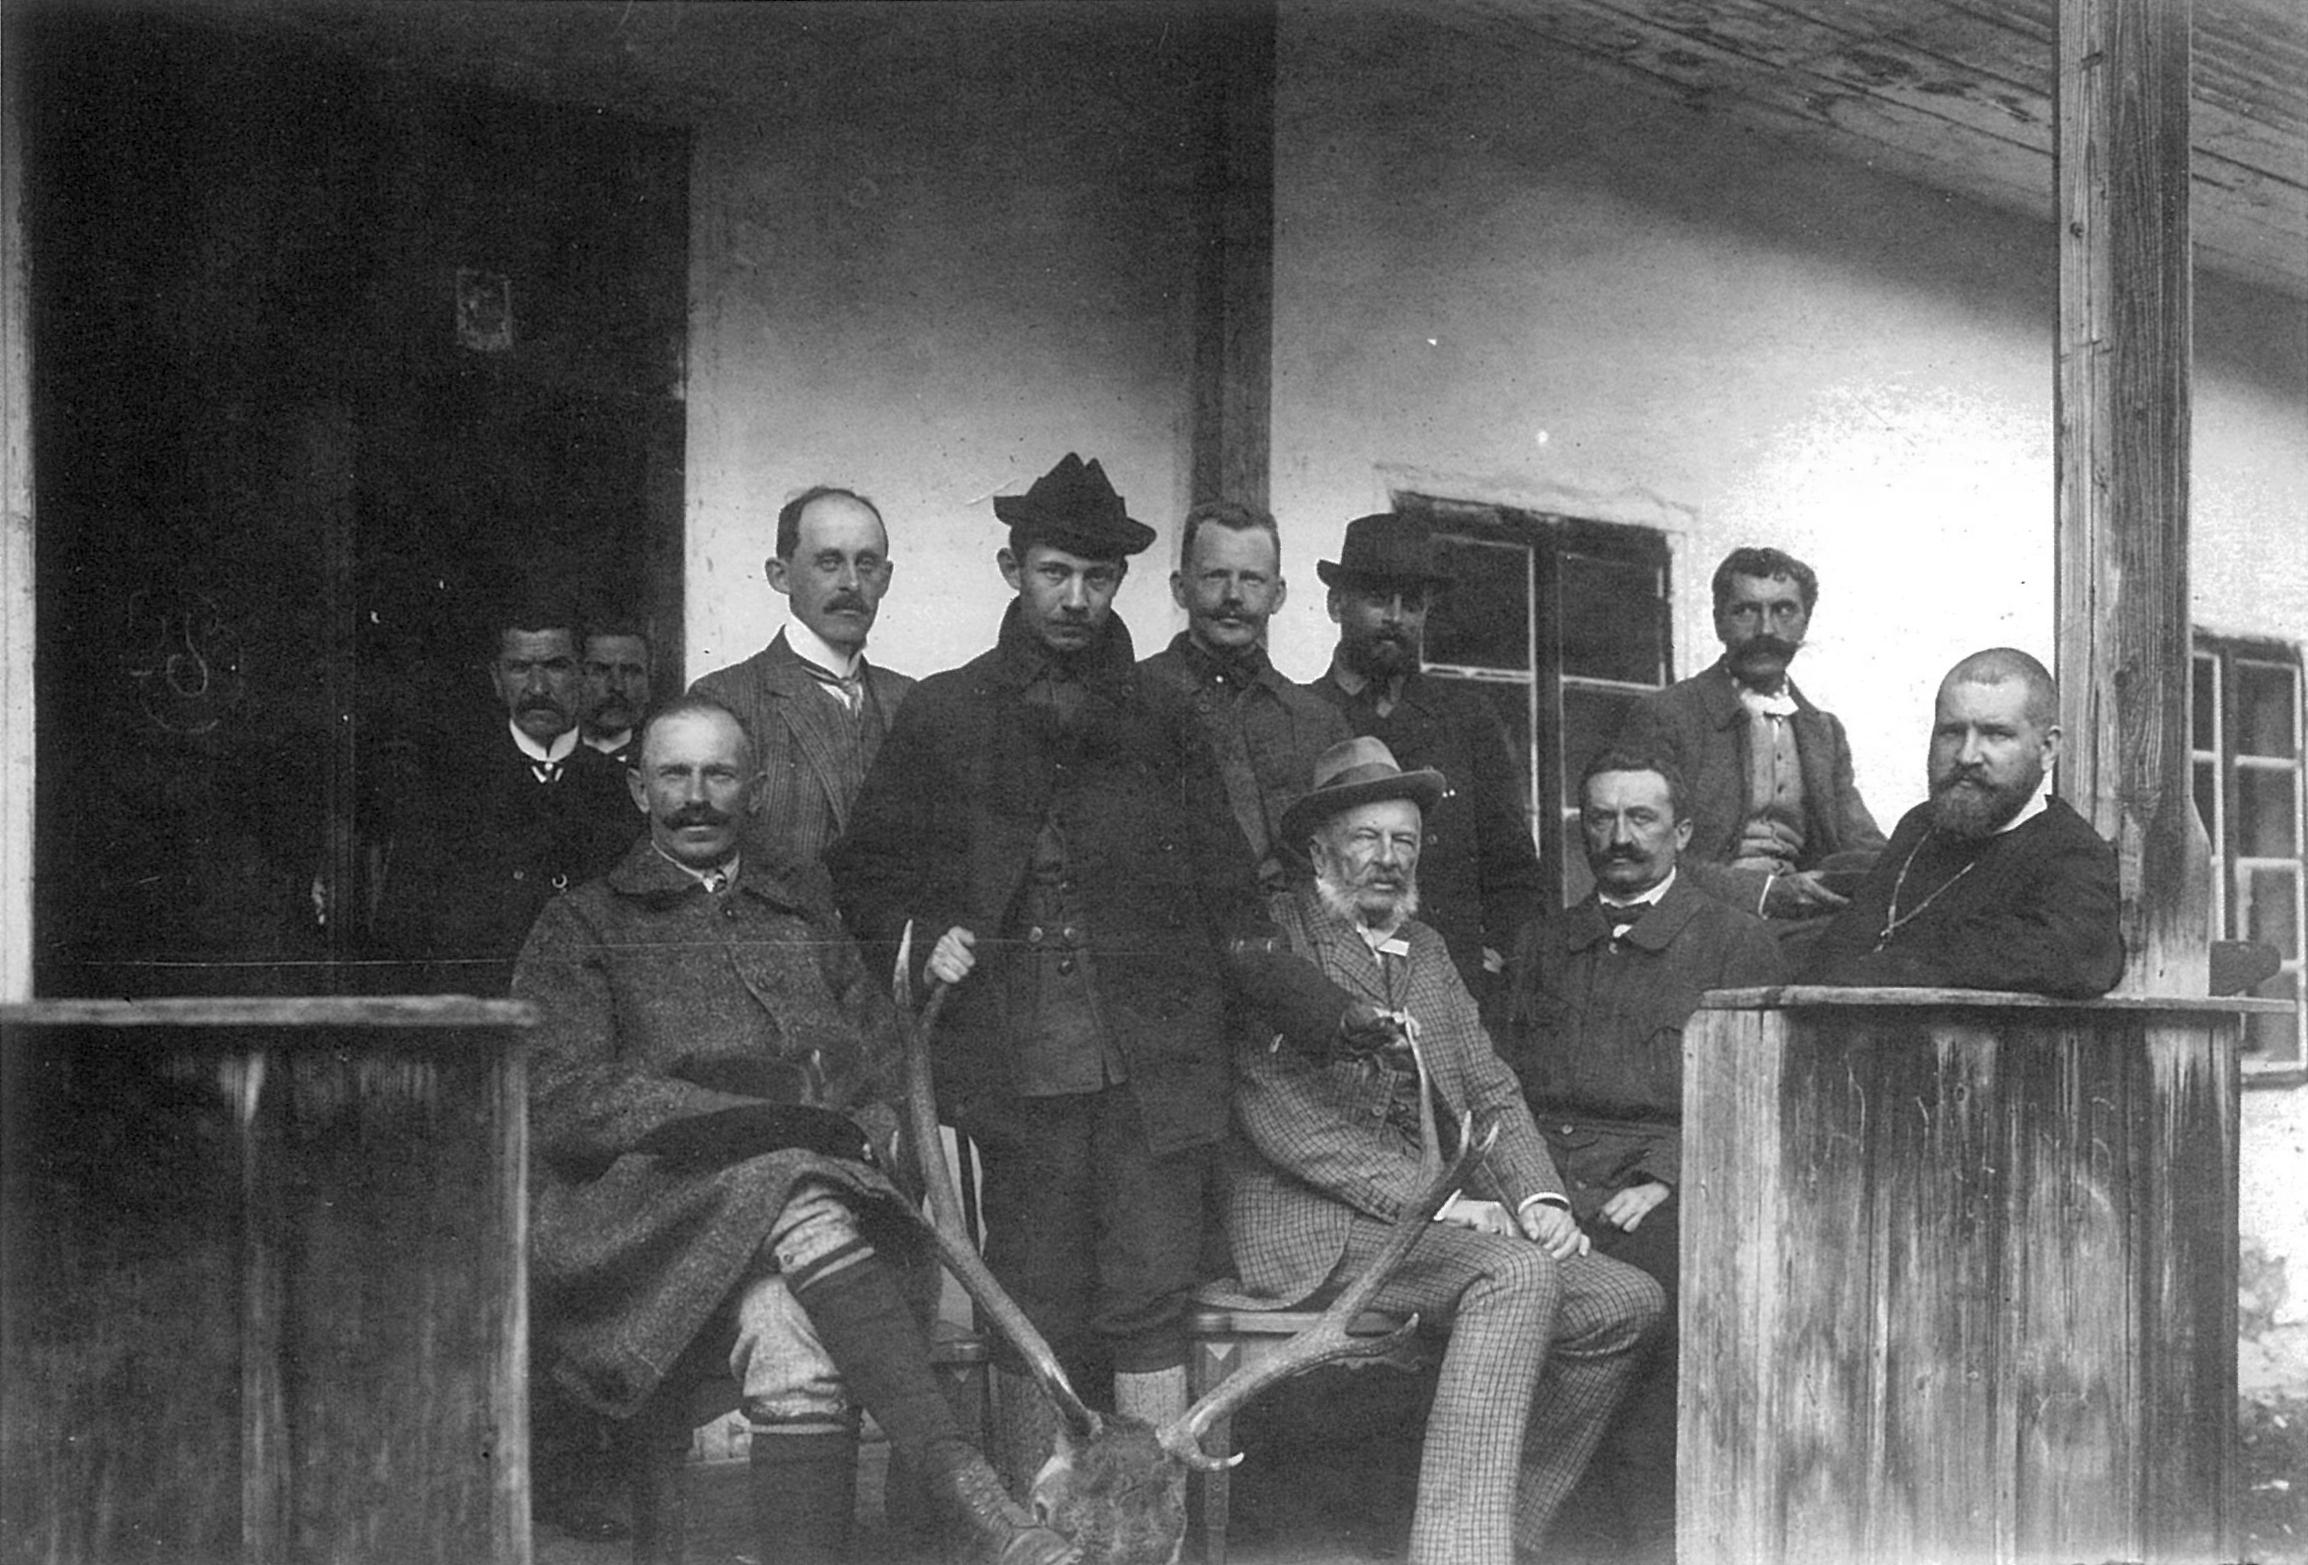 The Sheptytskyi brothers with their father and friends in the village Perehinsk in 1909.